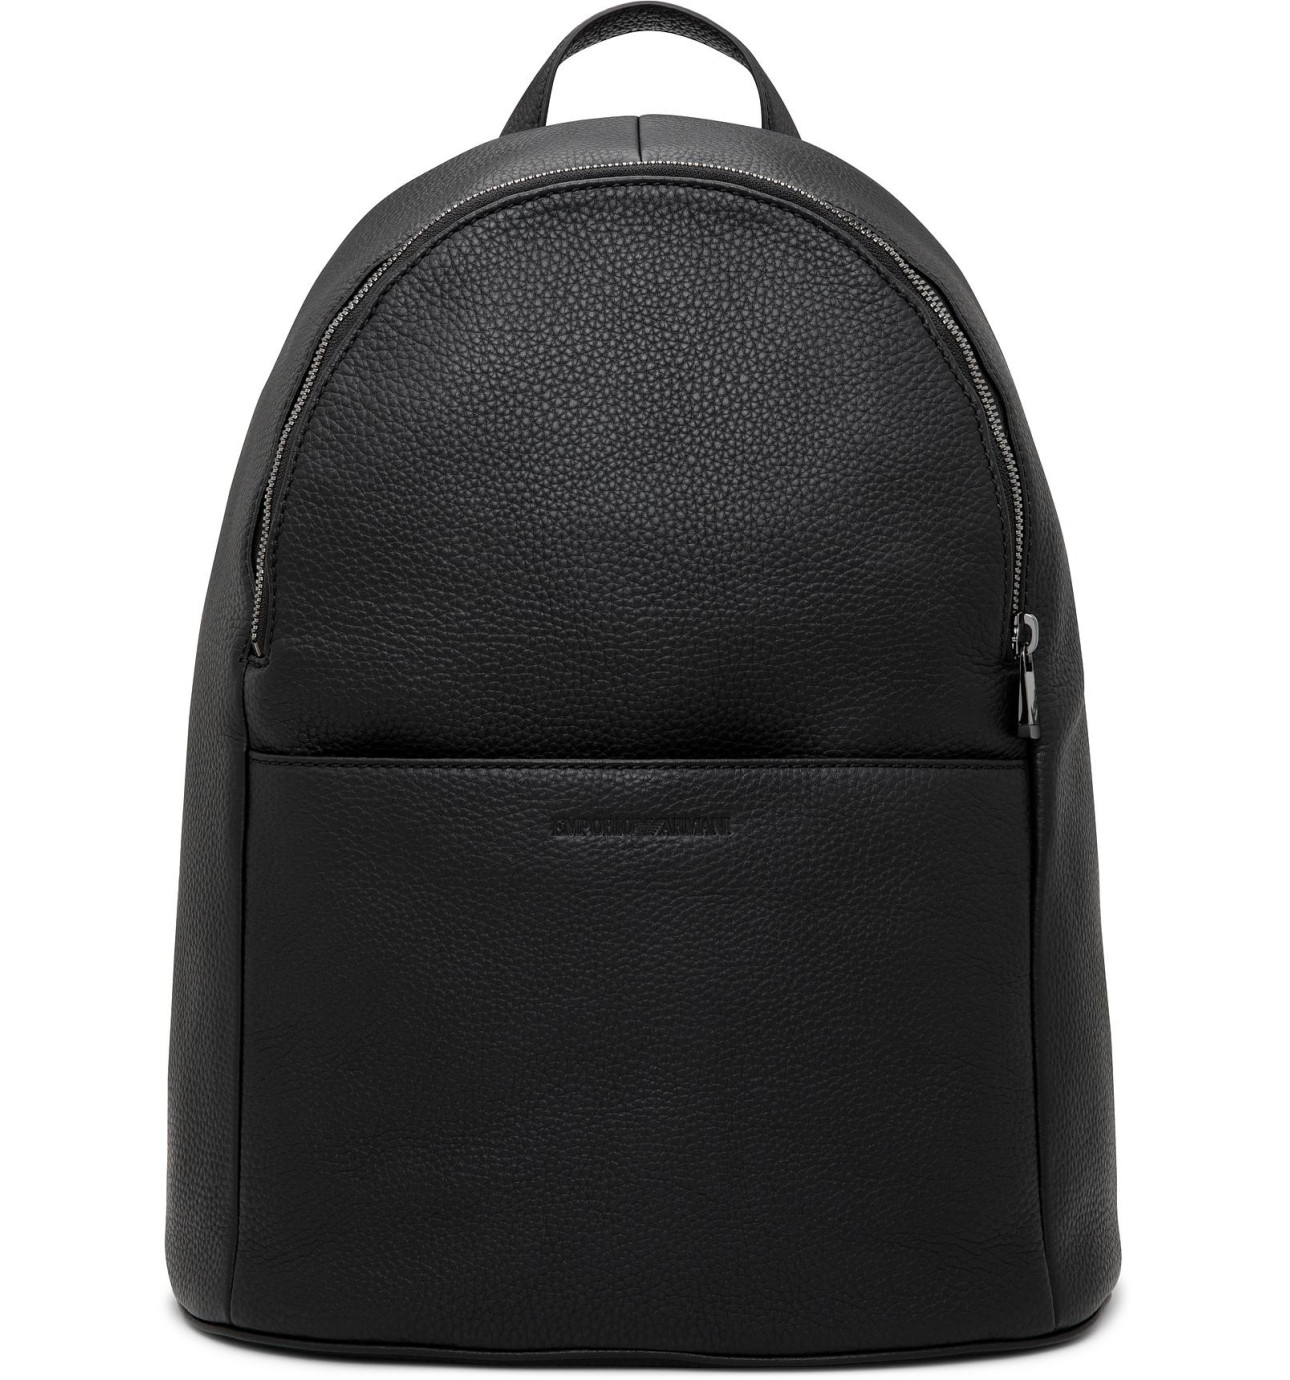 Melbourne Backpacks Leather Backpacks Melbourne Crazy Backpacks